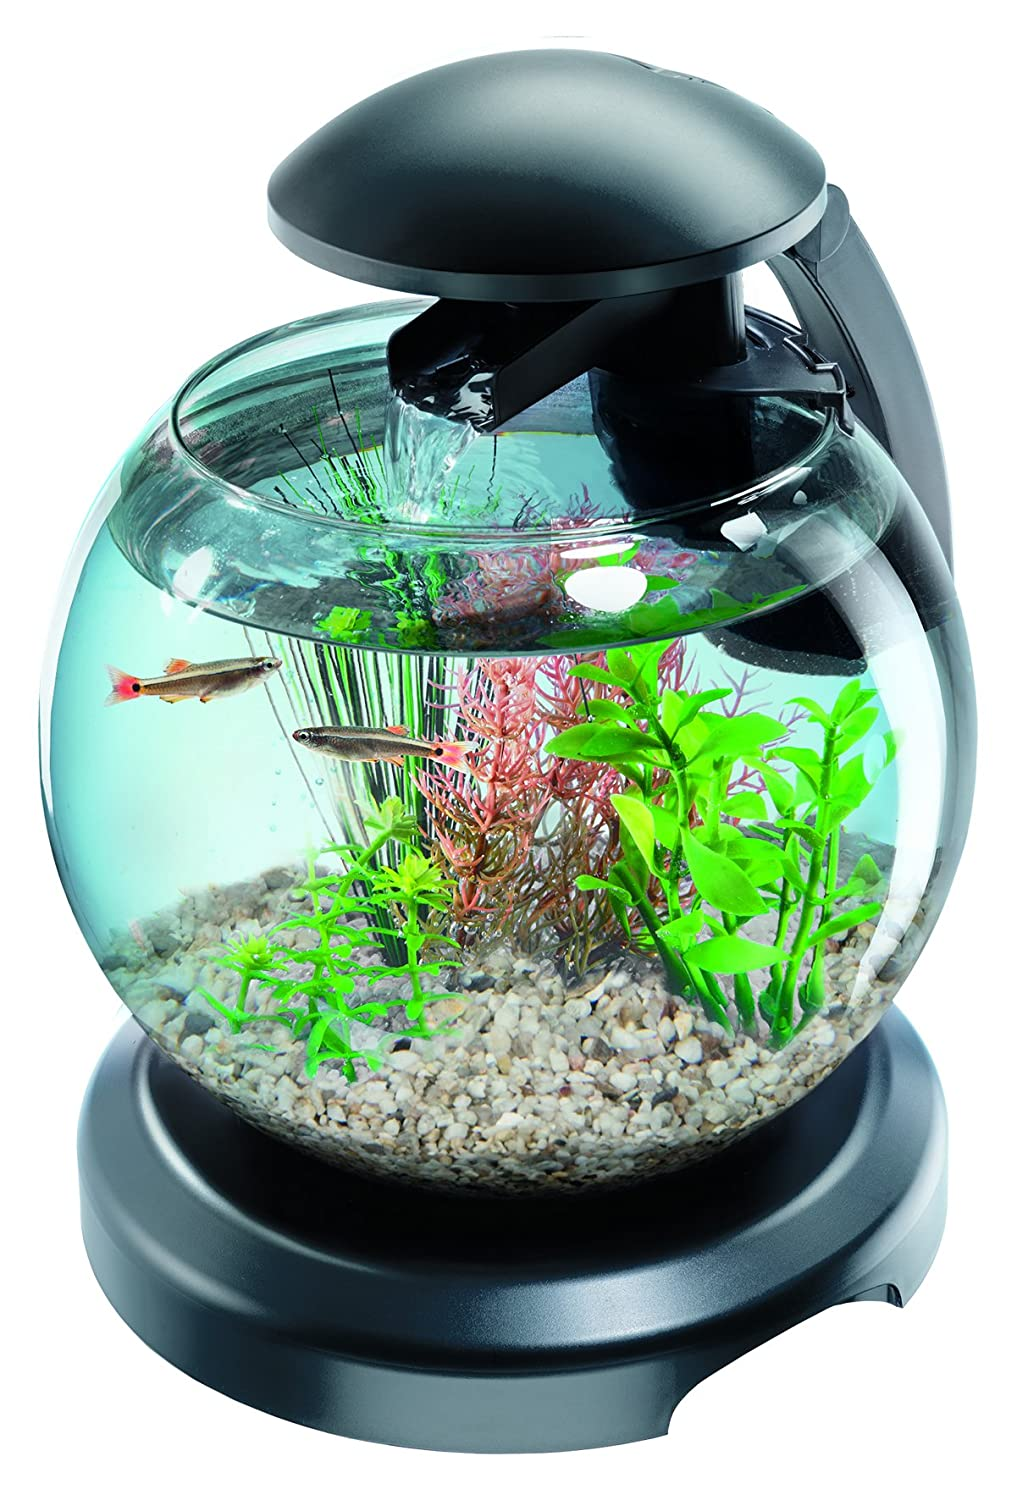 Elegant aquarium boule pas cher id es de conception de for Petit aquarium boule